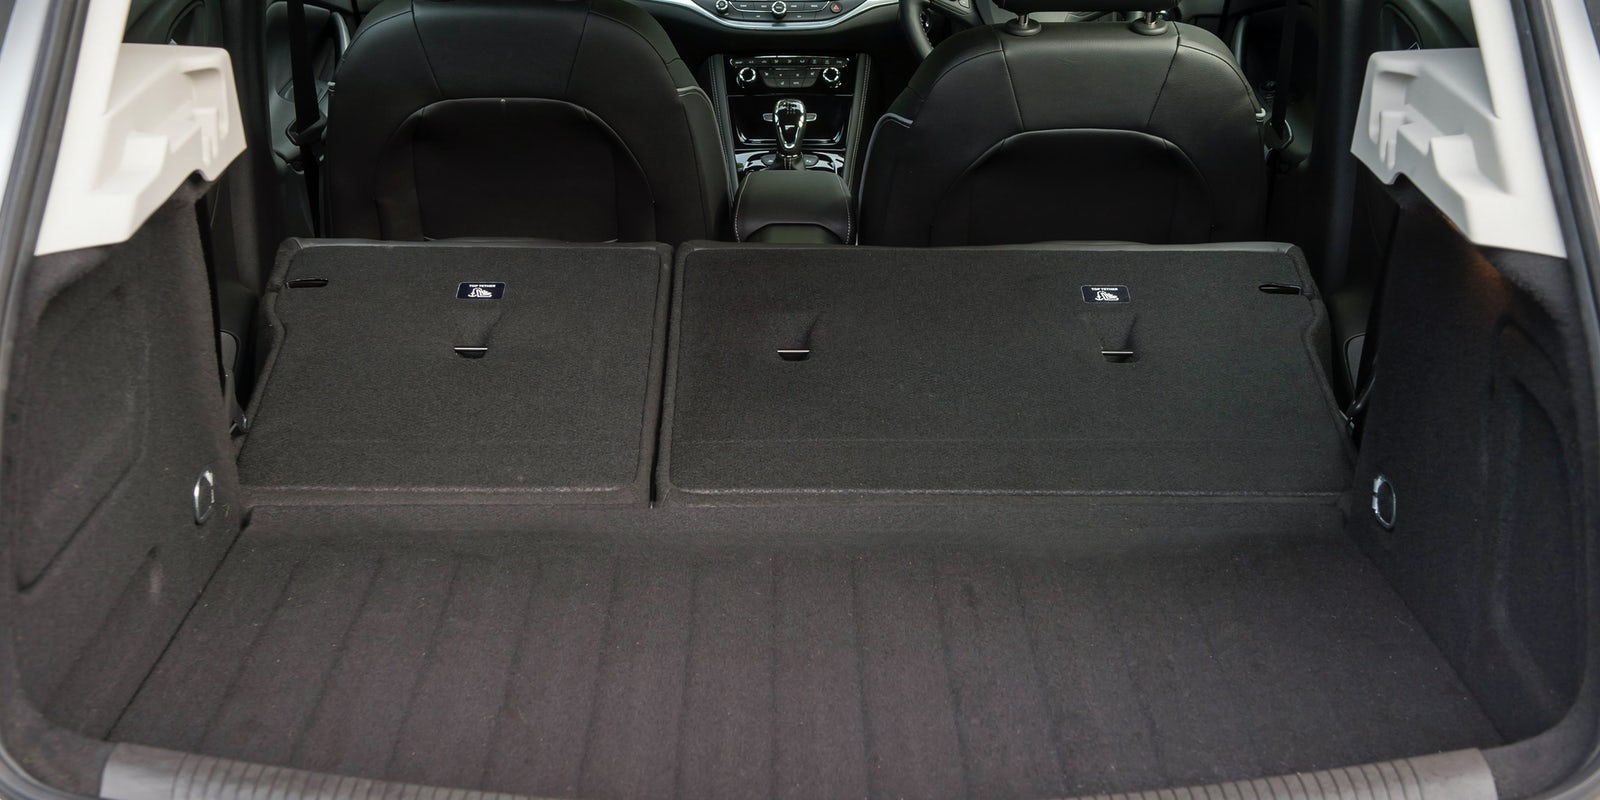 Vauxhall astra gtc 1 6t sri auto express - Flip The Rear Seats Down And You Re Left With A Flat Floor